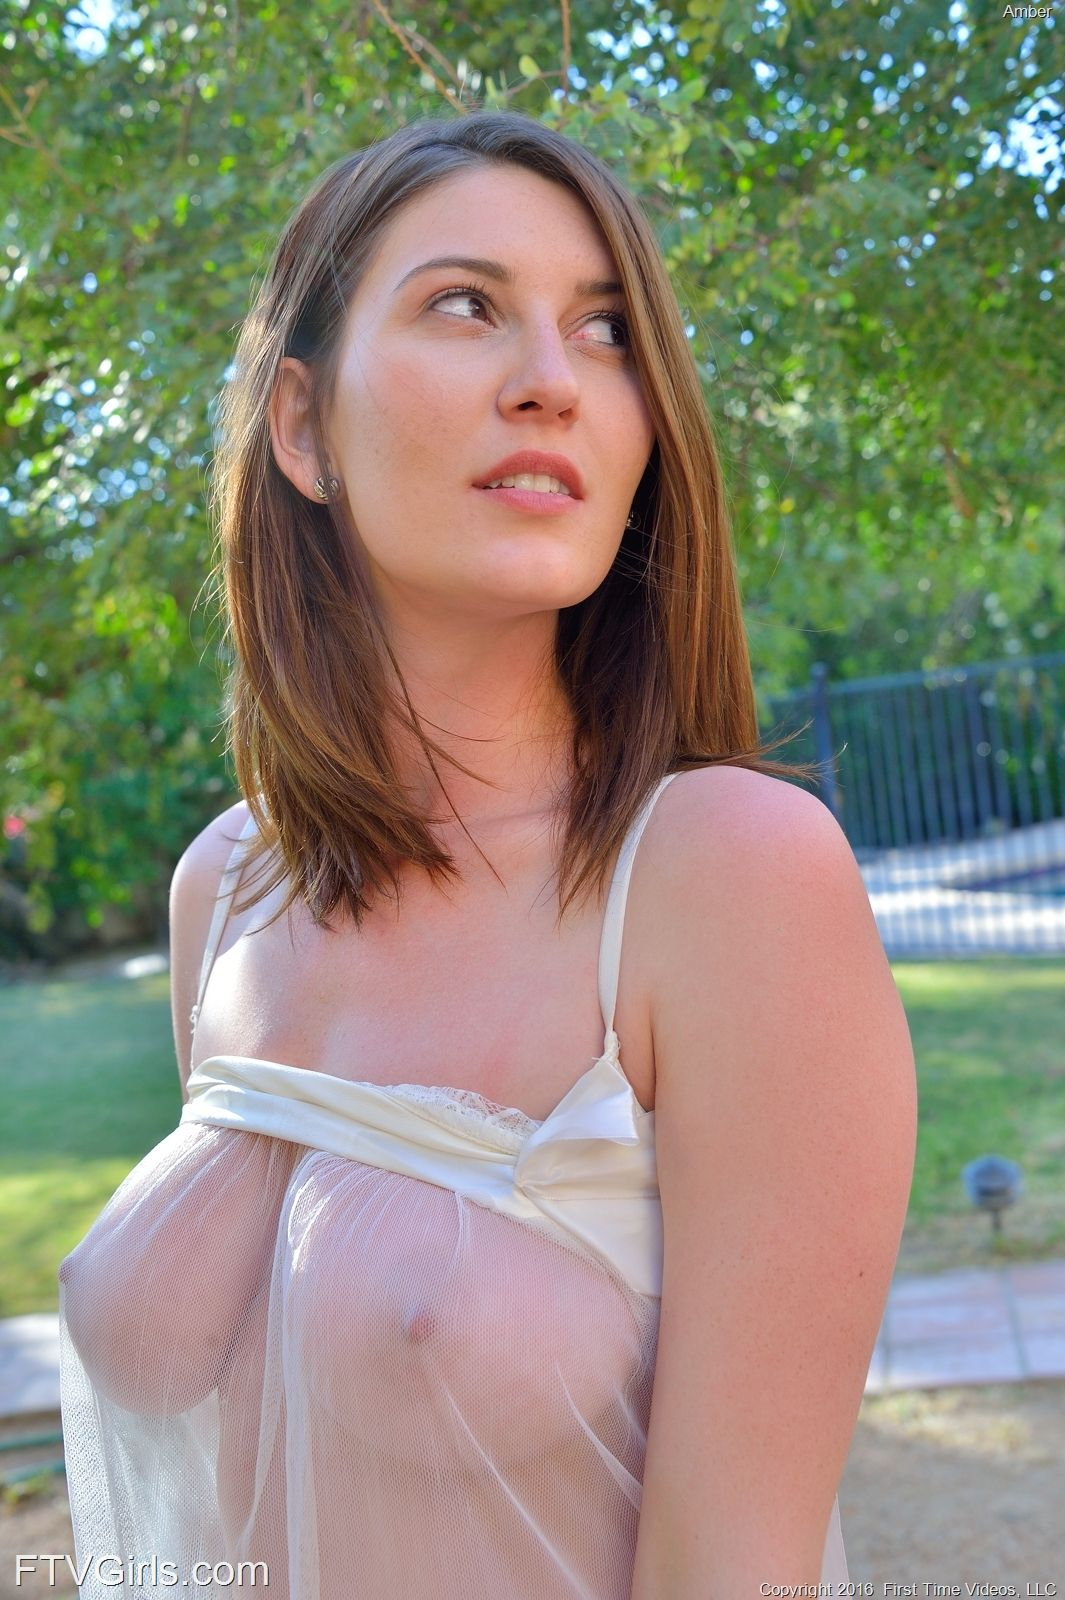 blouse seethrough sex